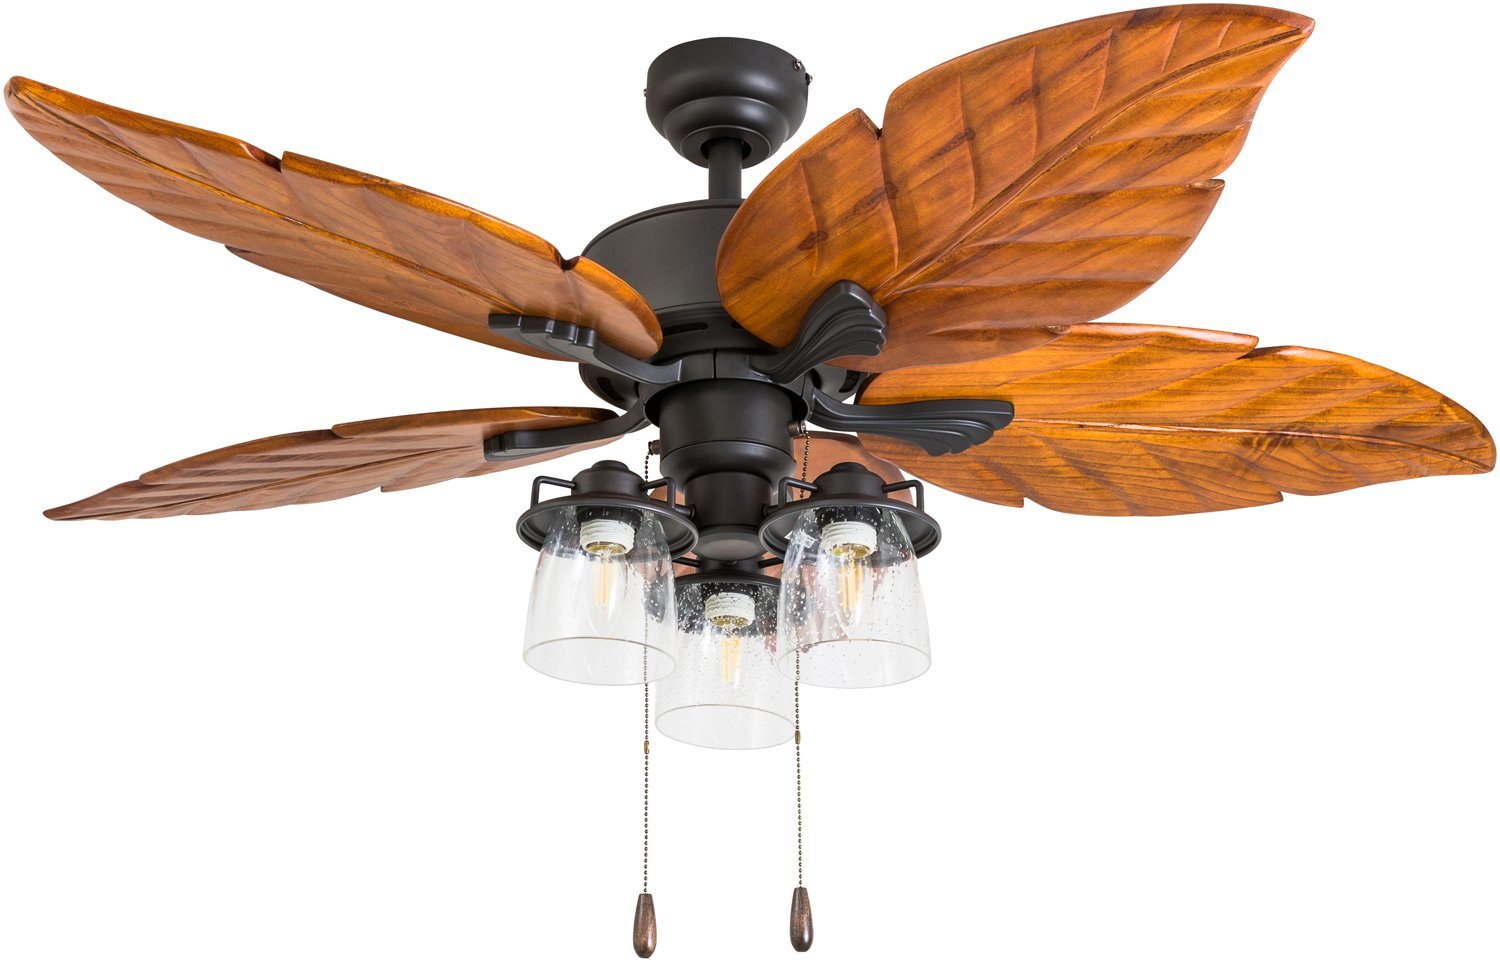 Prominence Home 50677-01 Caspian Sea Tropical Ceiling Fan, 52 , Dark Cherry Hand Carved Wood, Aged Bronze